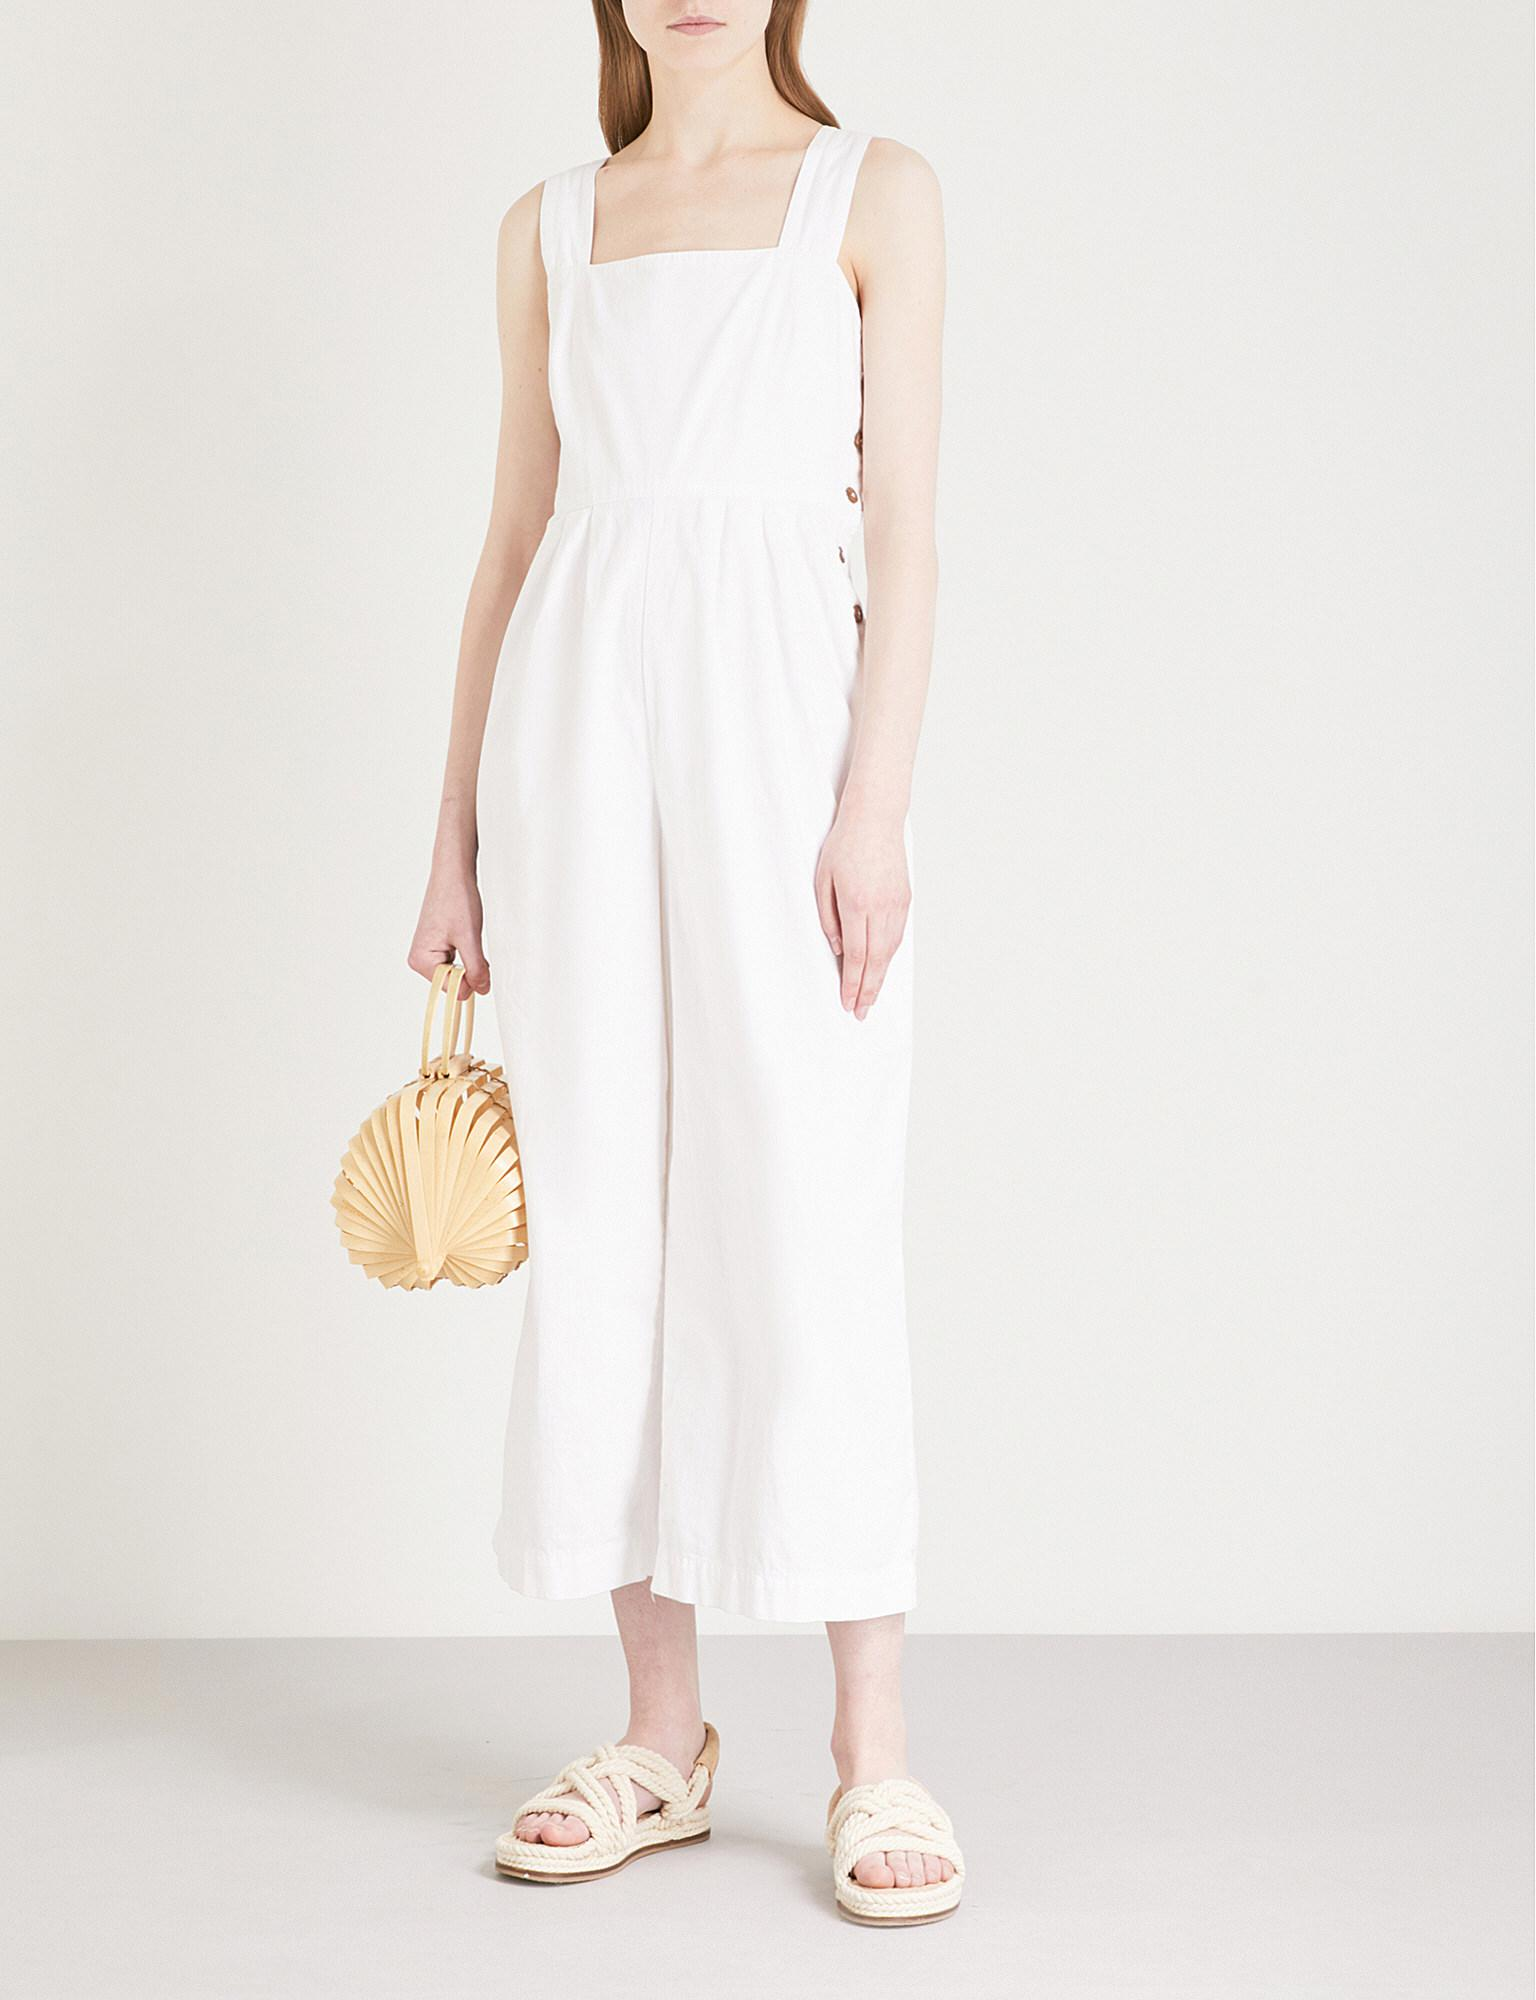 5961c5bc6dcf Free People Fara Button Up Cotton Jumpsuit in White - Lyst